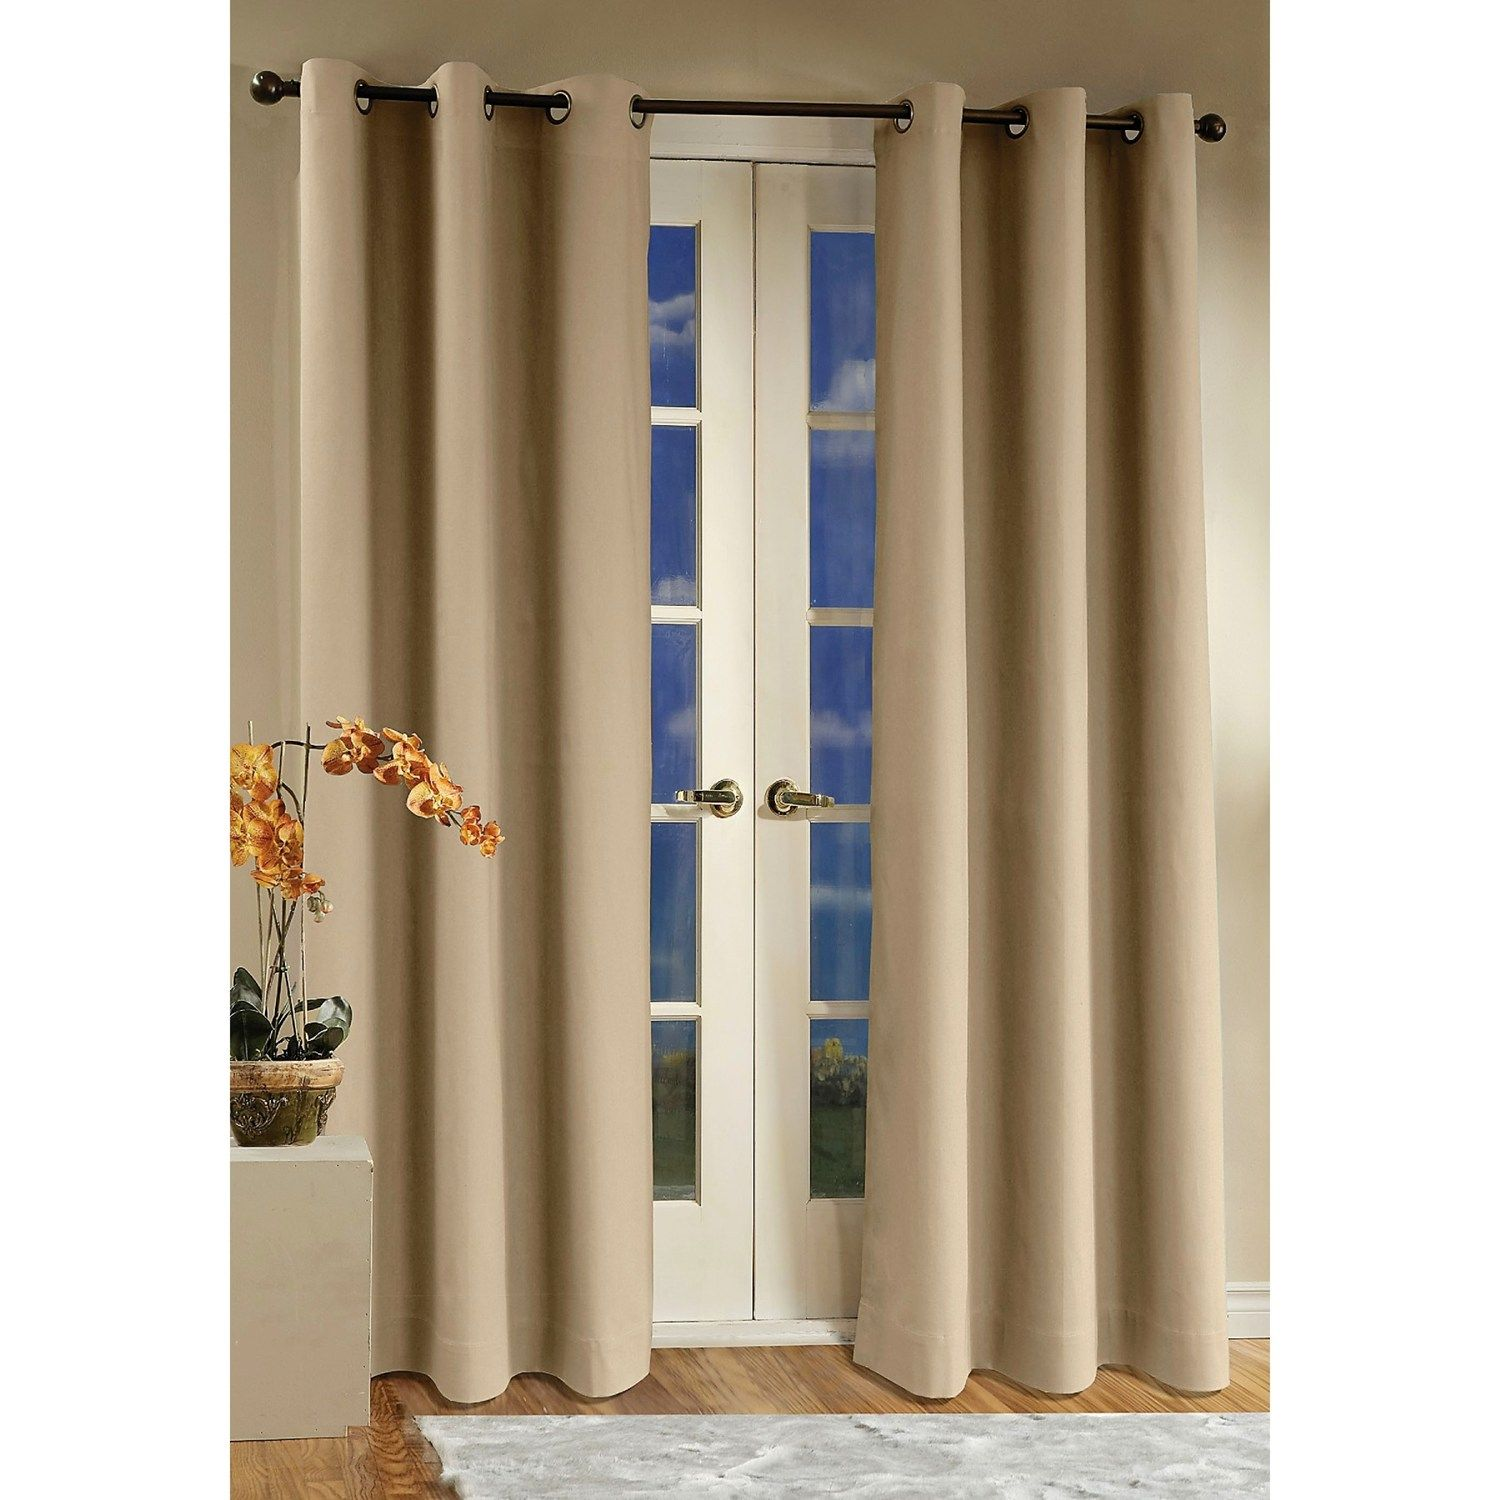 thermalogic weathermate curtains 80x95 grommet top insulated